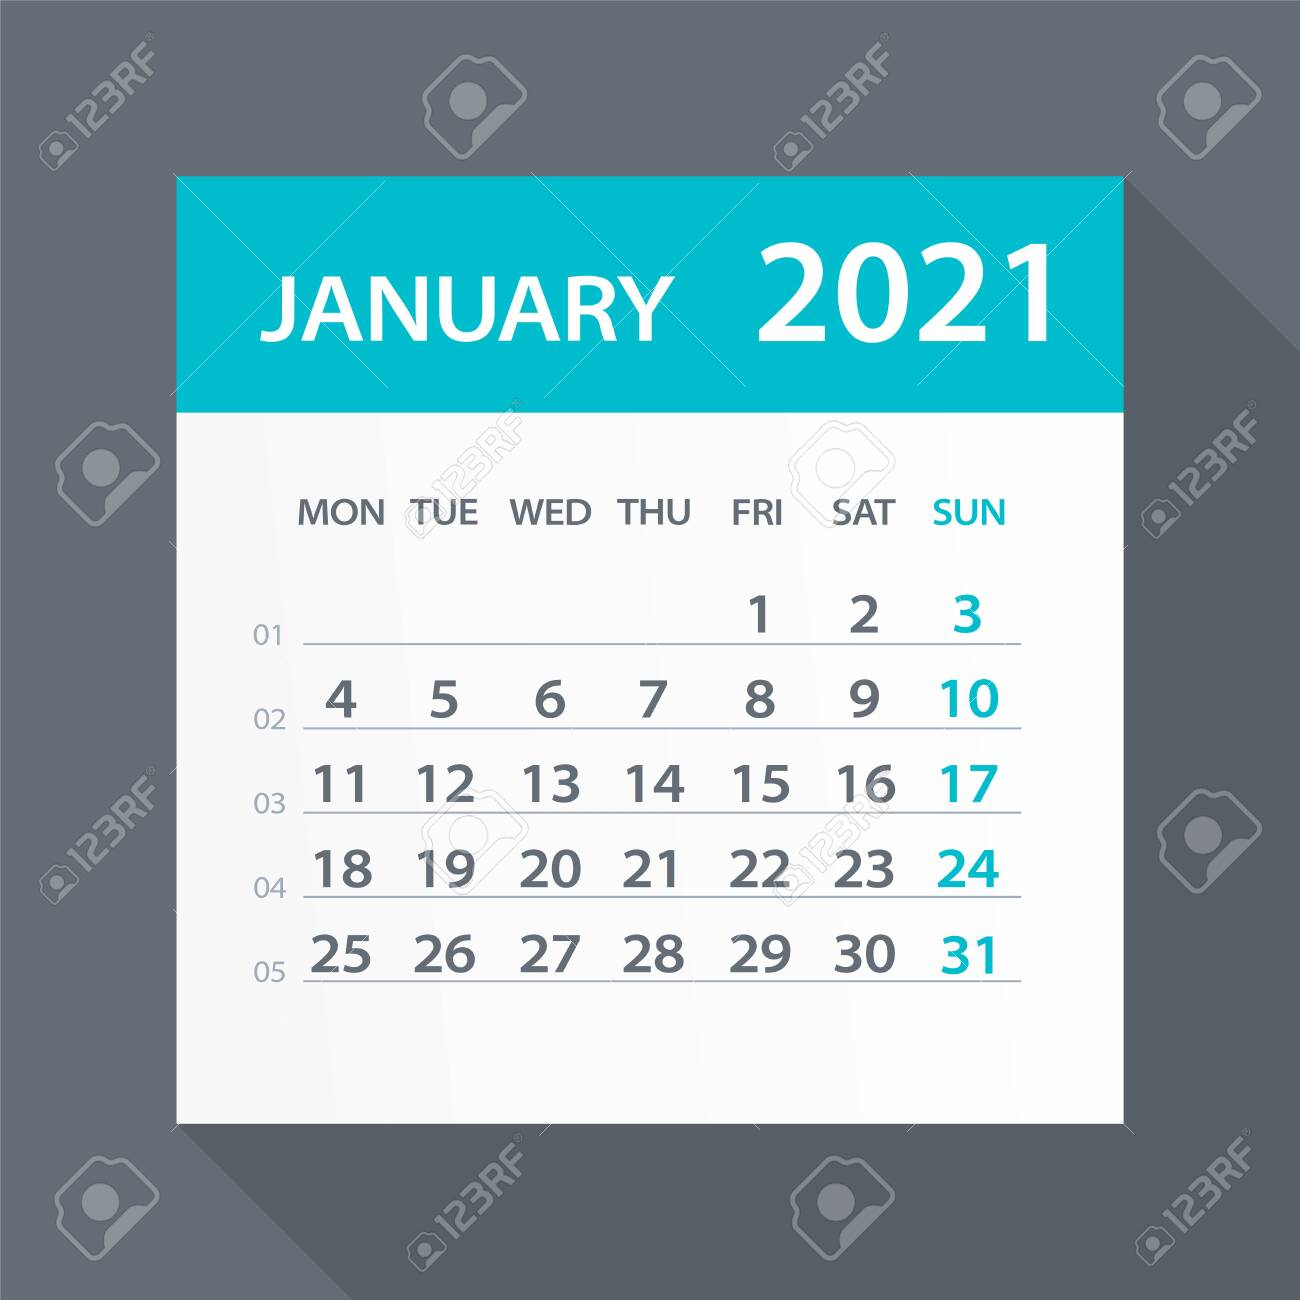 photo stock vector january 2021 calendar leaf illustration vector graphic page